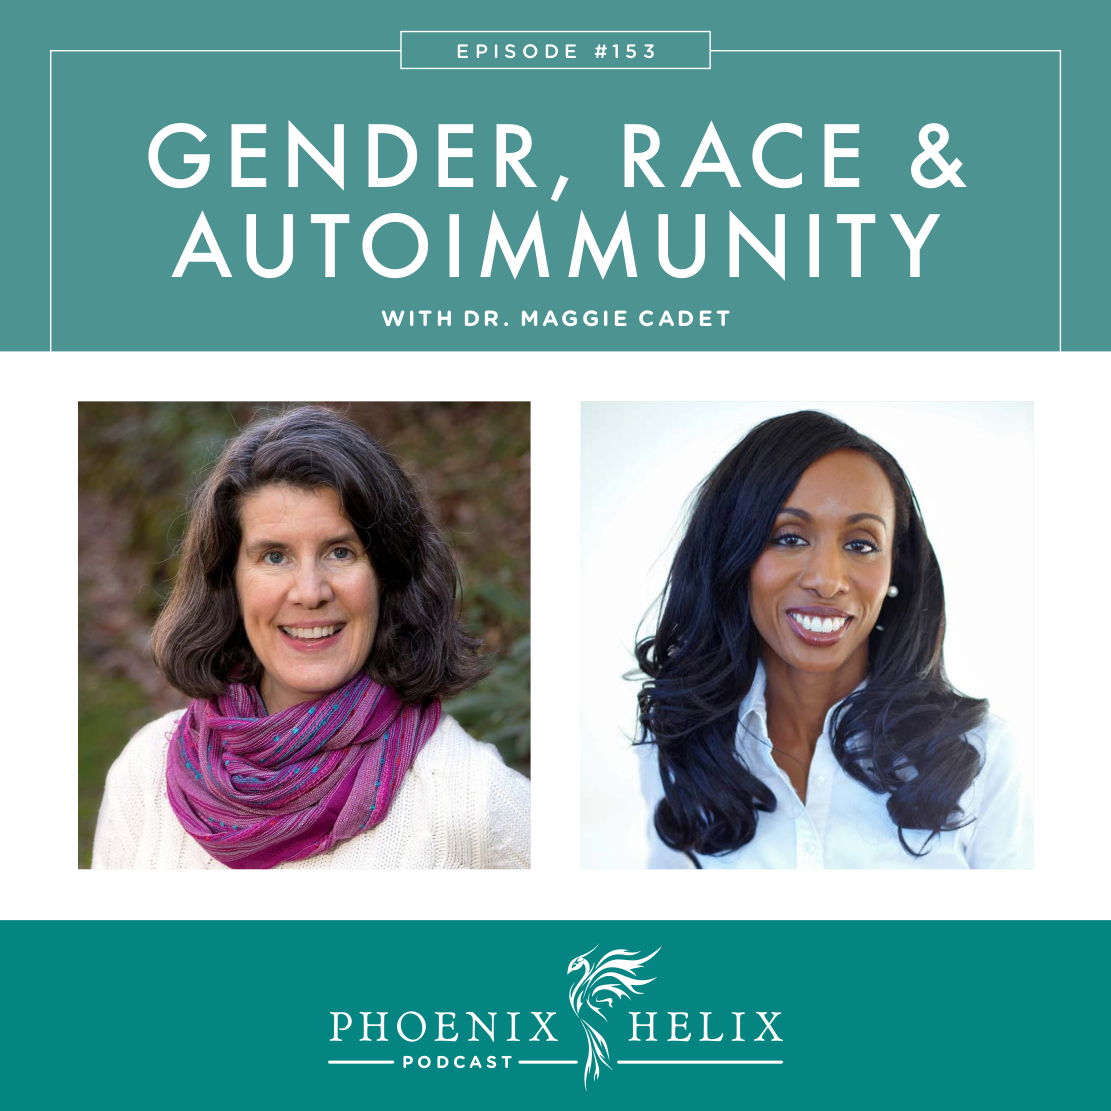 Gender, Race, and Autoimmune Disease with Dr. Maggie Cadet | Phoenix Helix Podcast